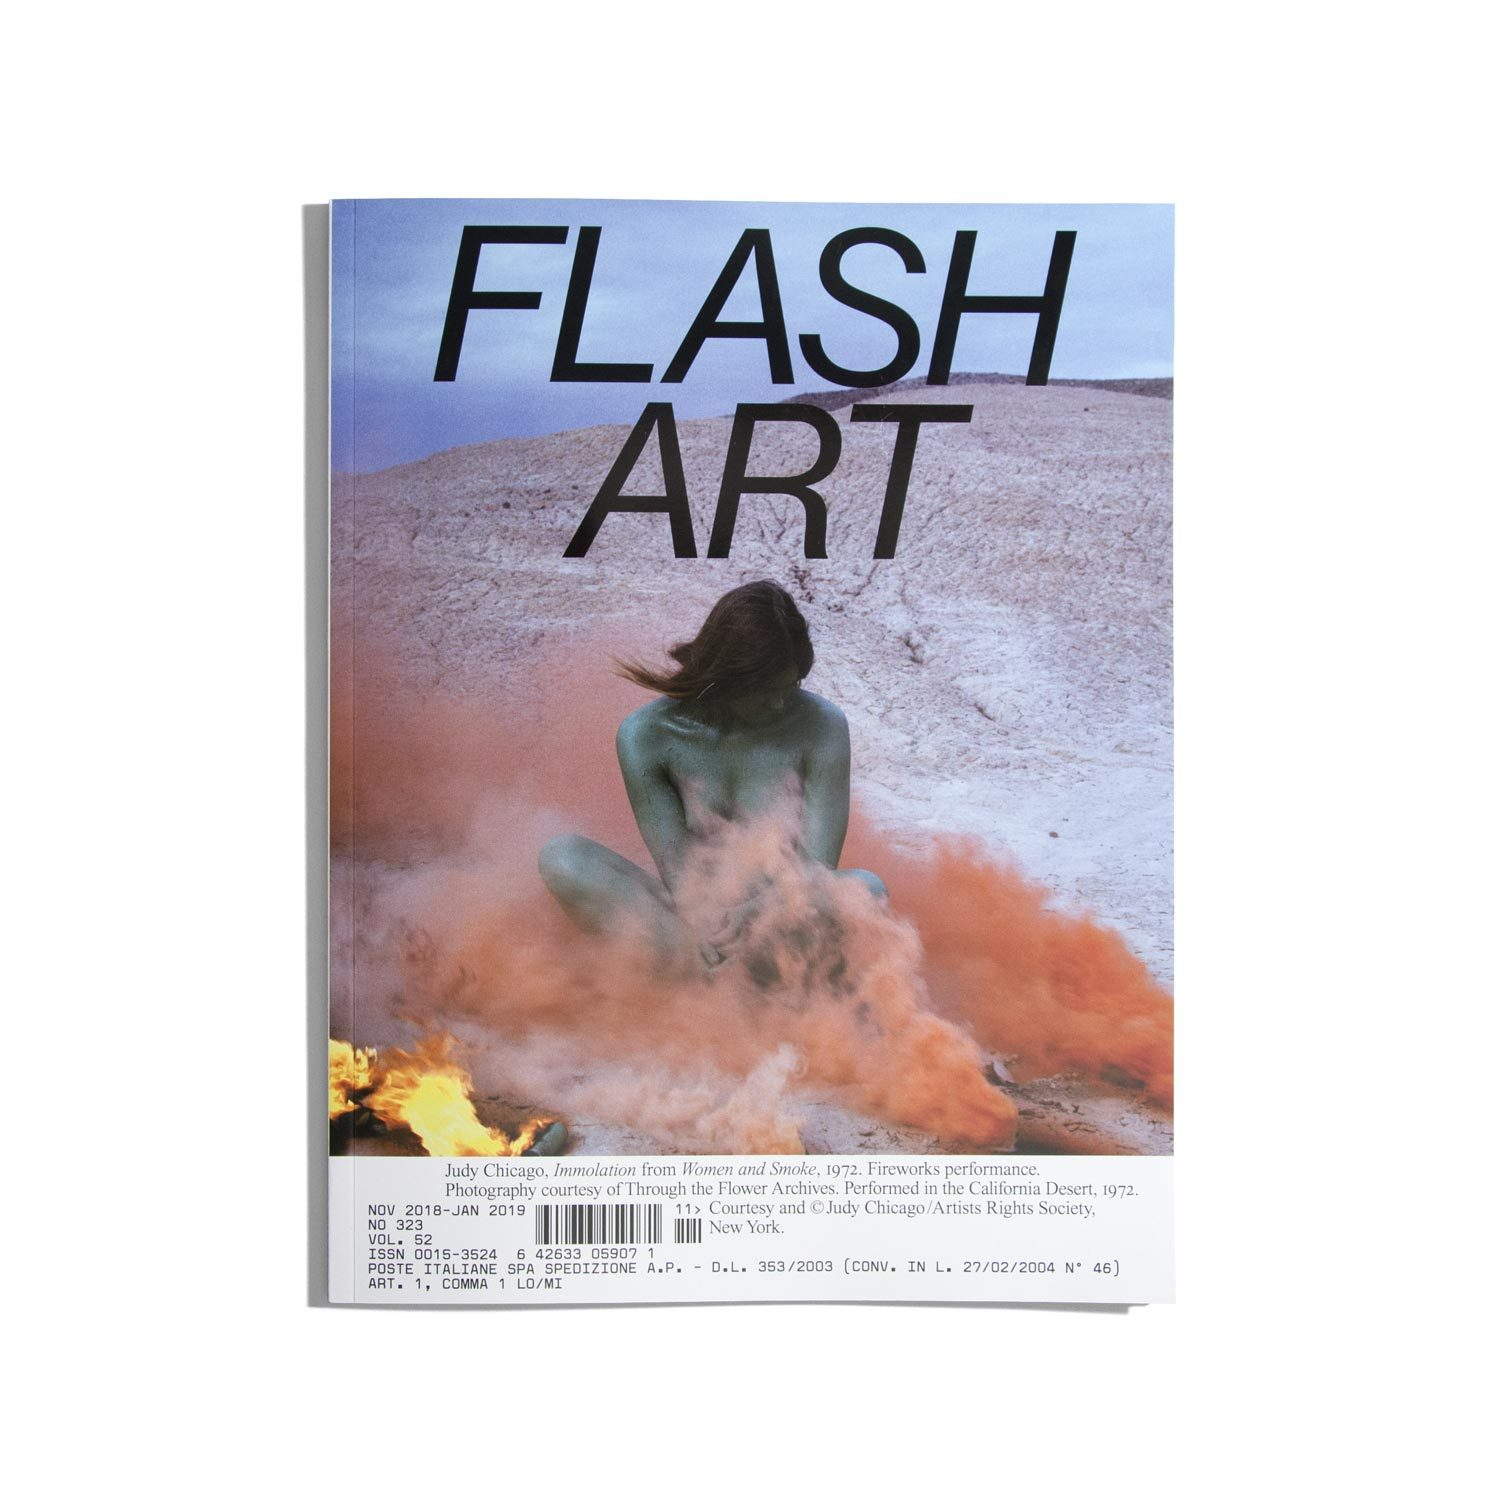 Flash Art Nov. 2018 – Jan. 2019